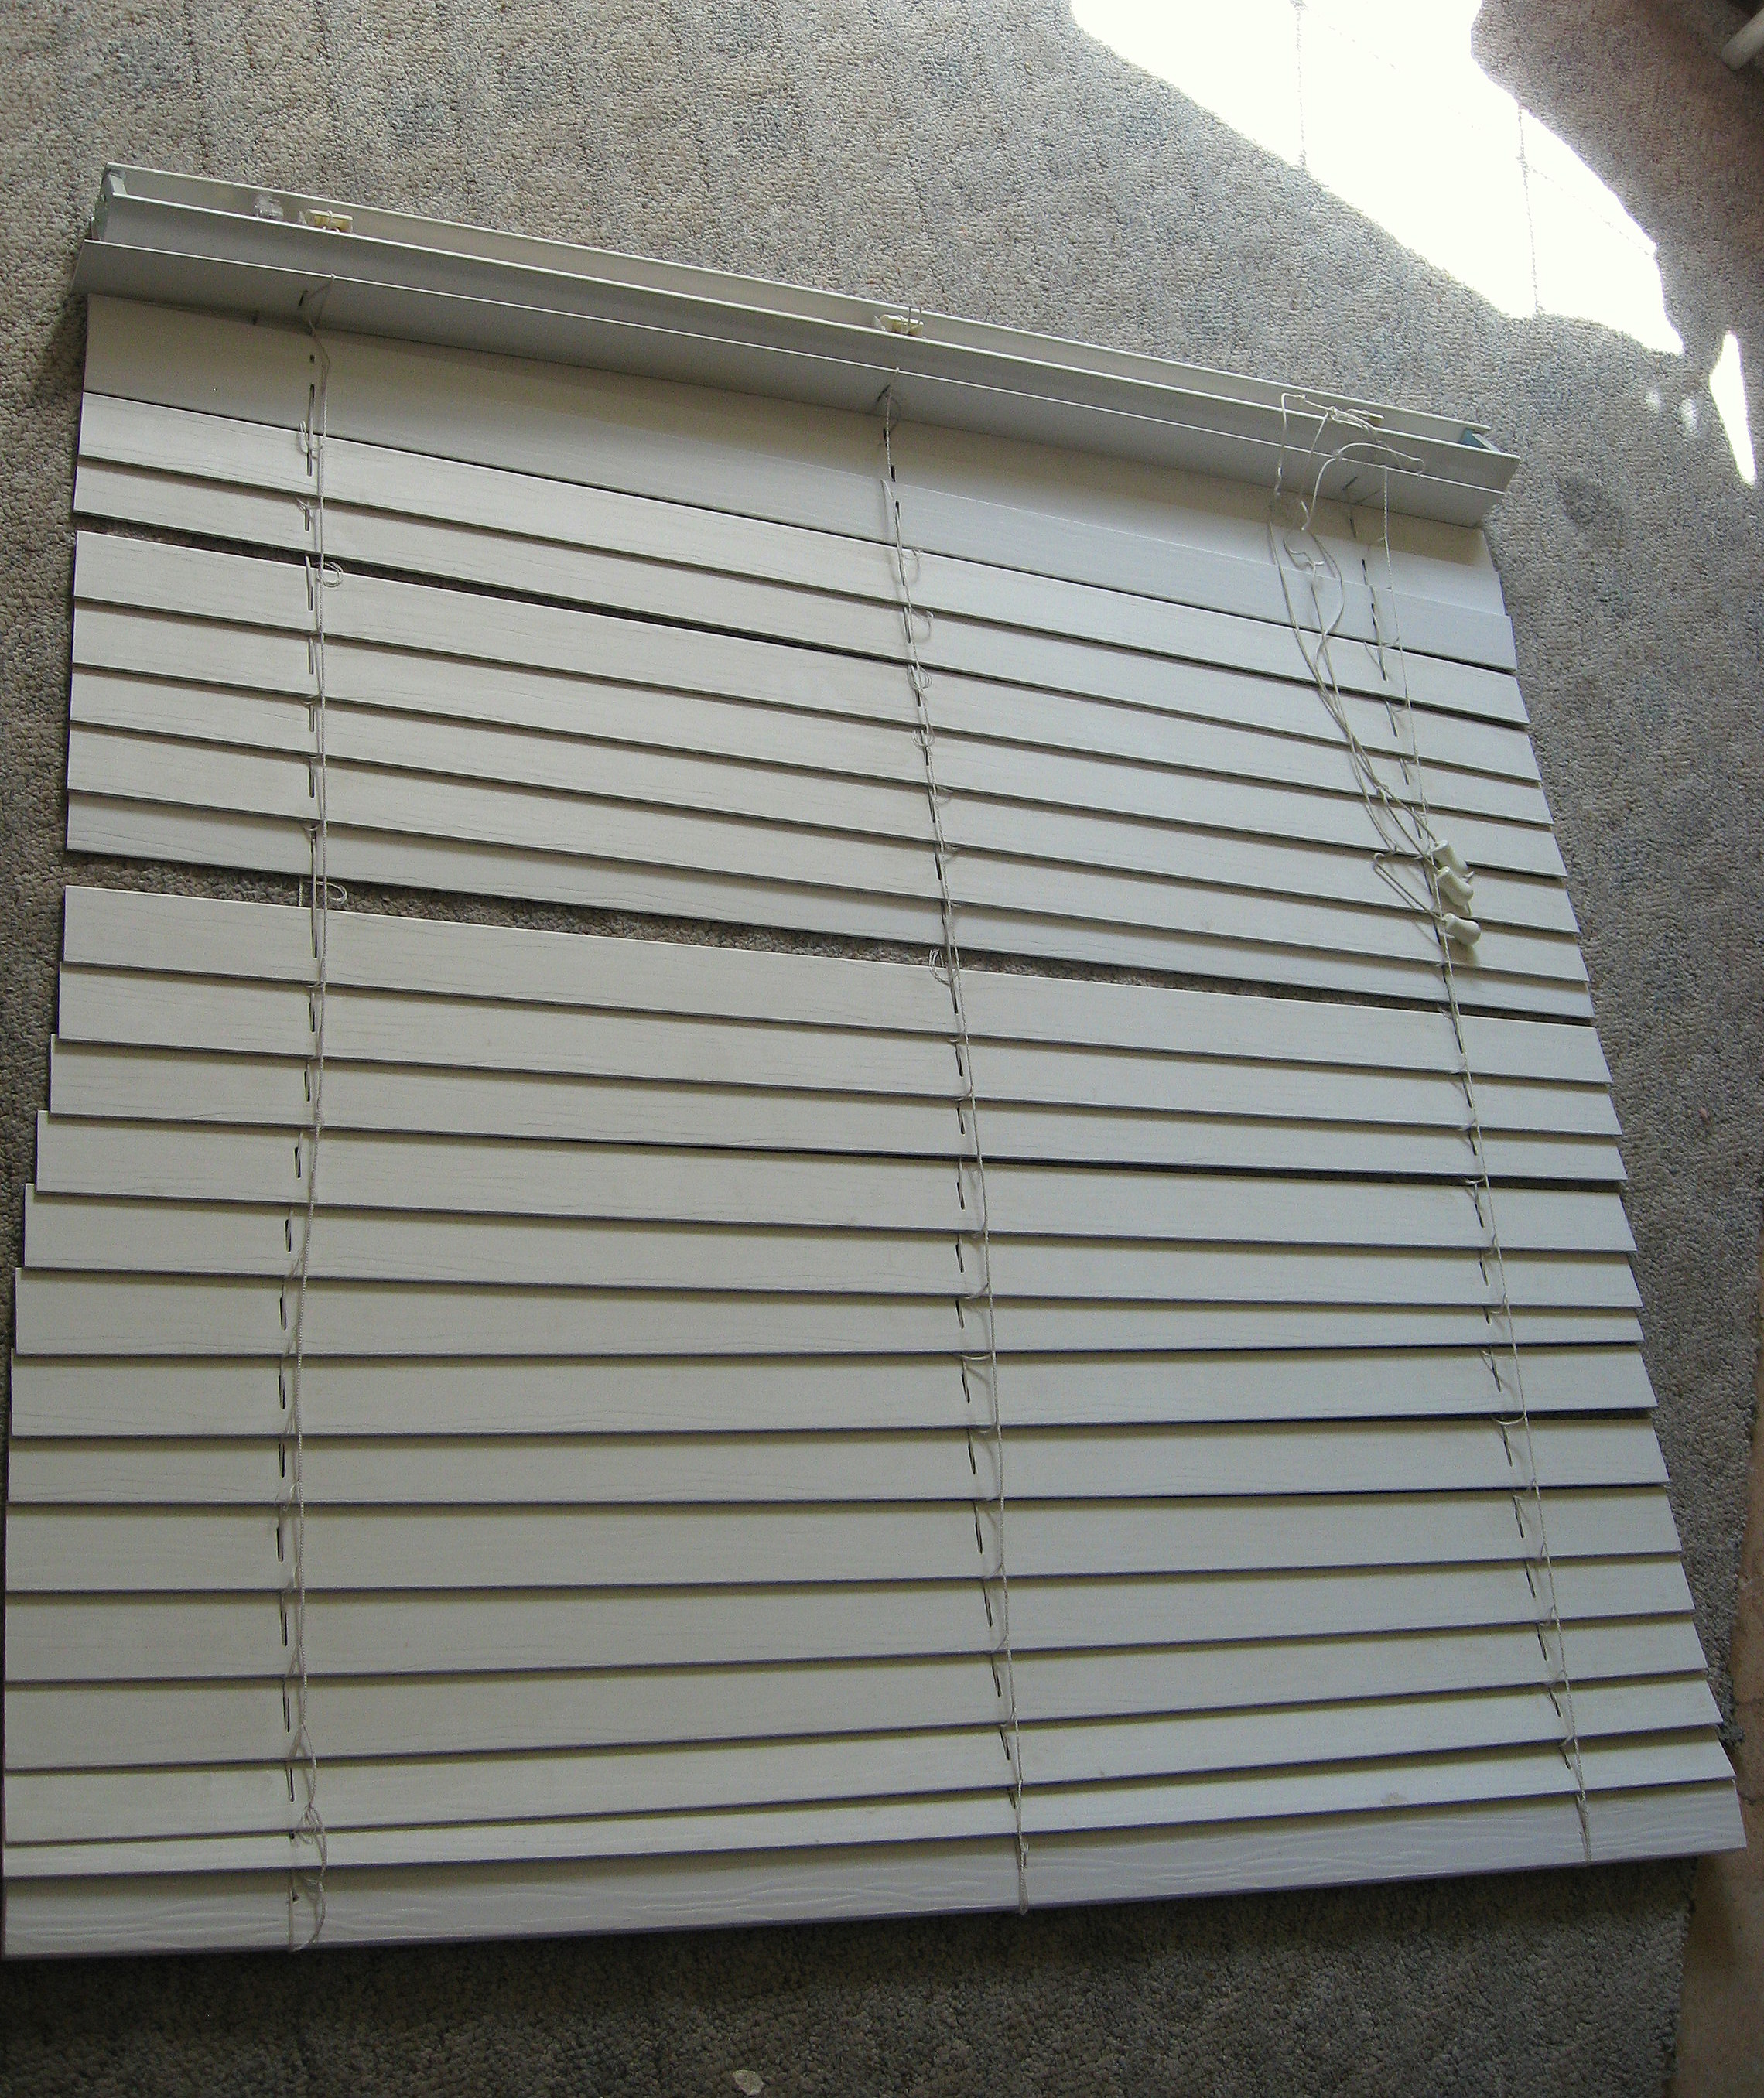 Best Image Result For Colored Window Blinds At Walmart With Walmart Window Blinds